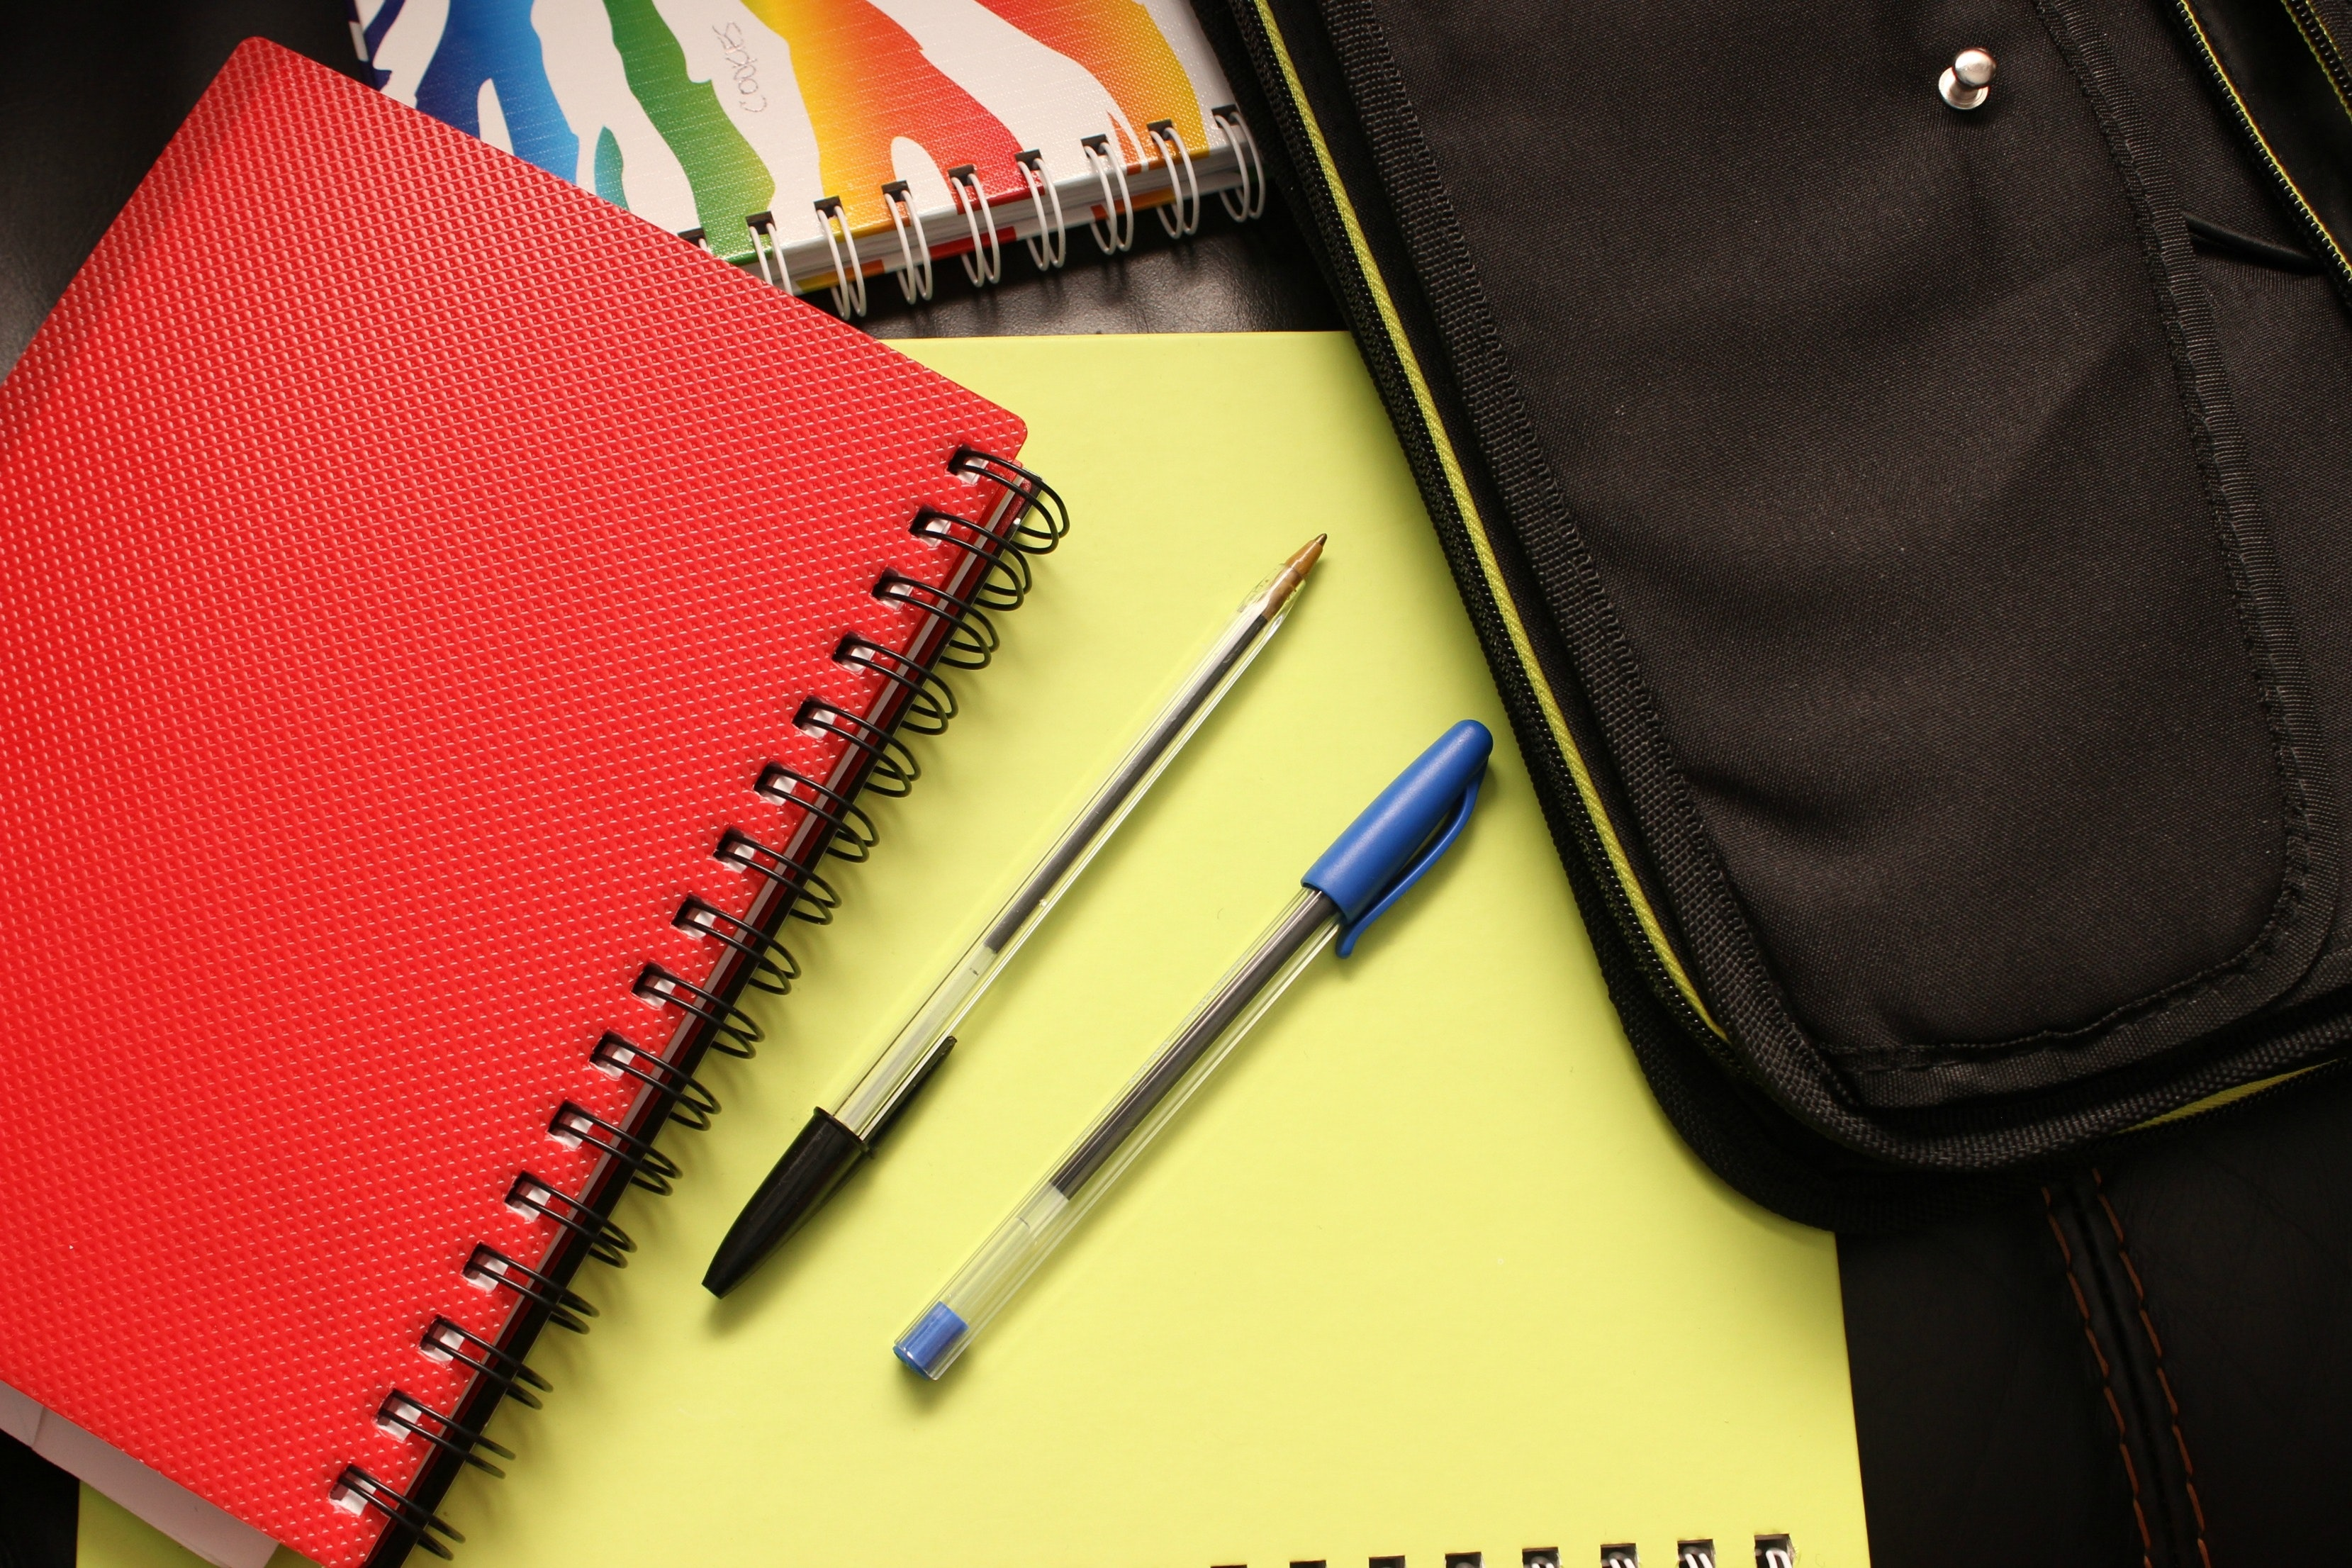 A photo of some notebooks and pens.